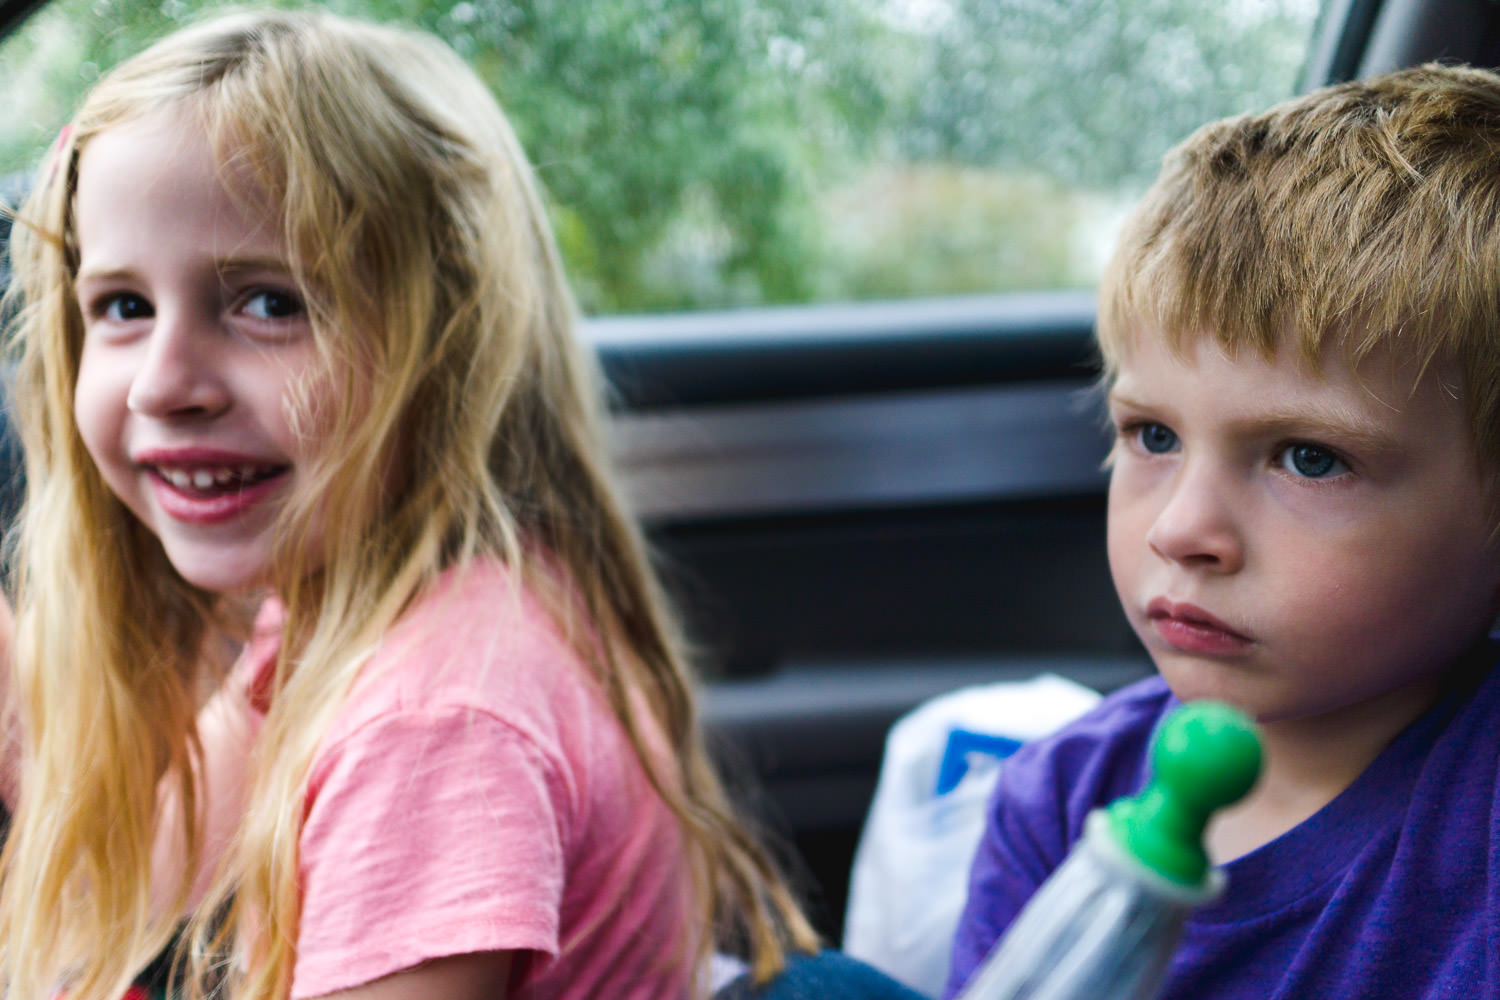 A brother and sister sit next to each other in the car.